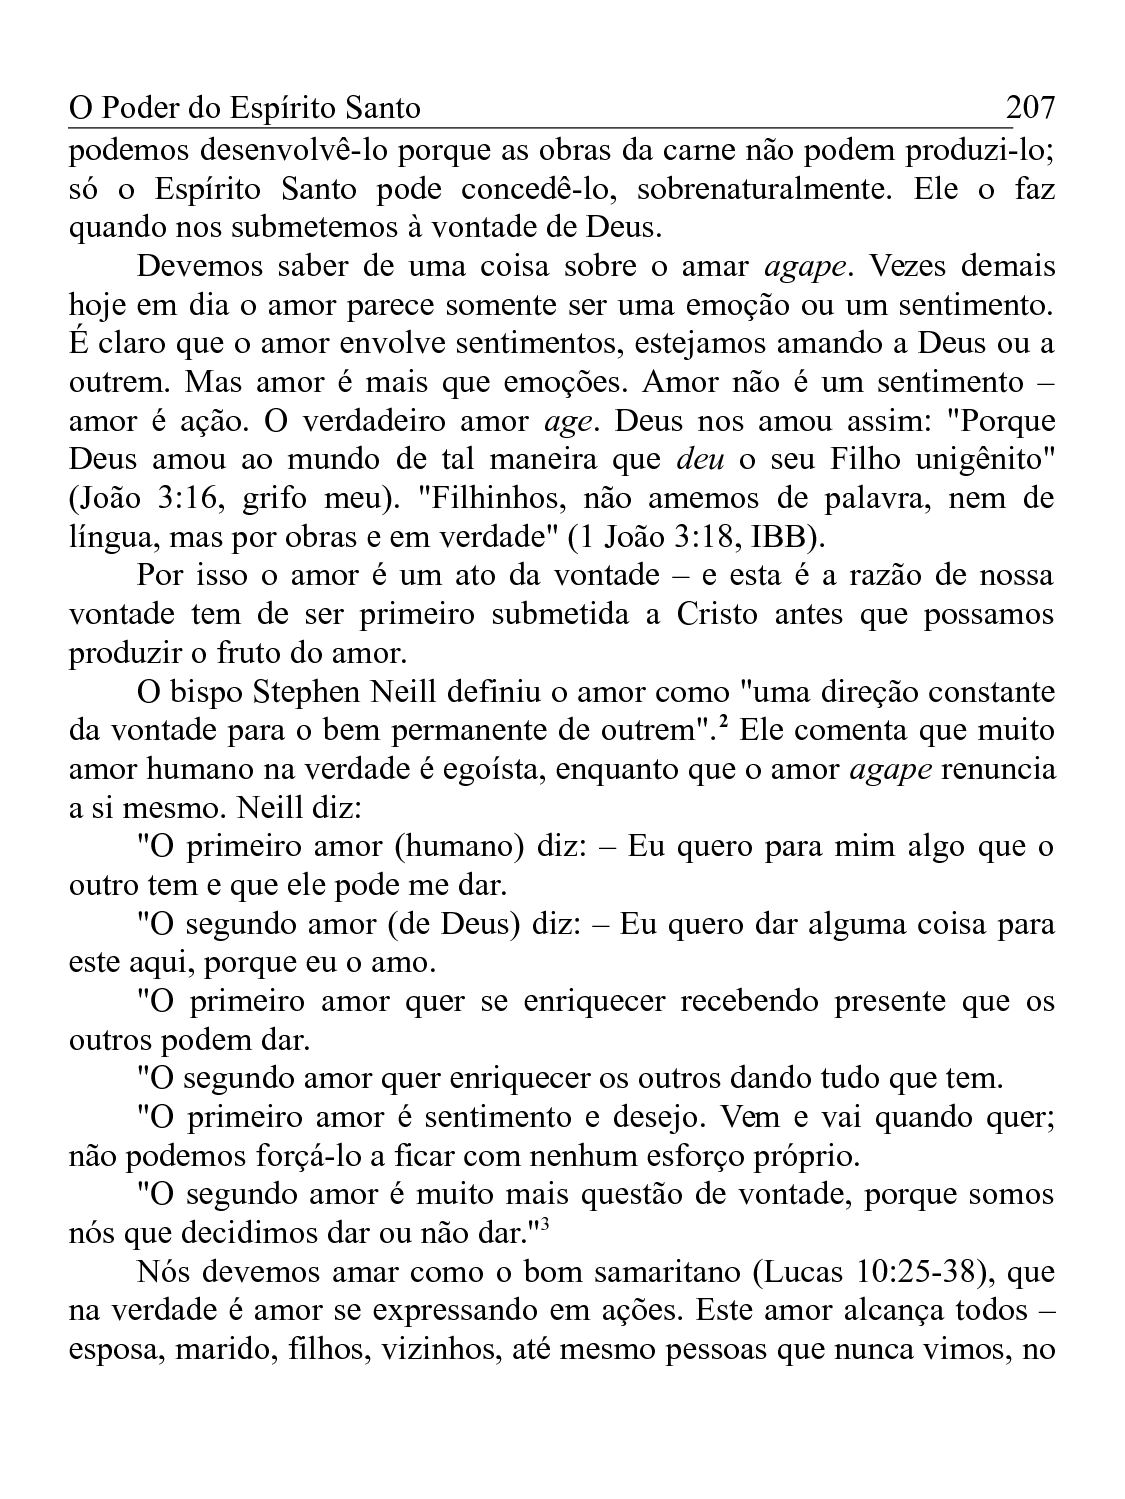 Page 207